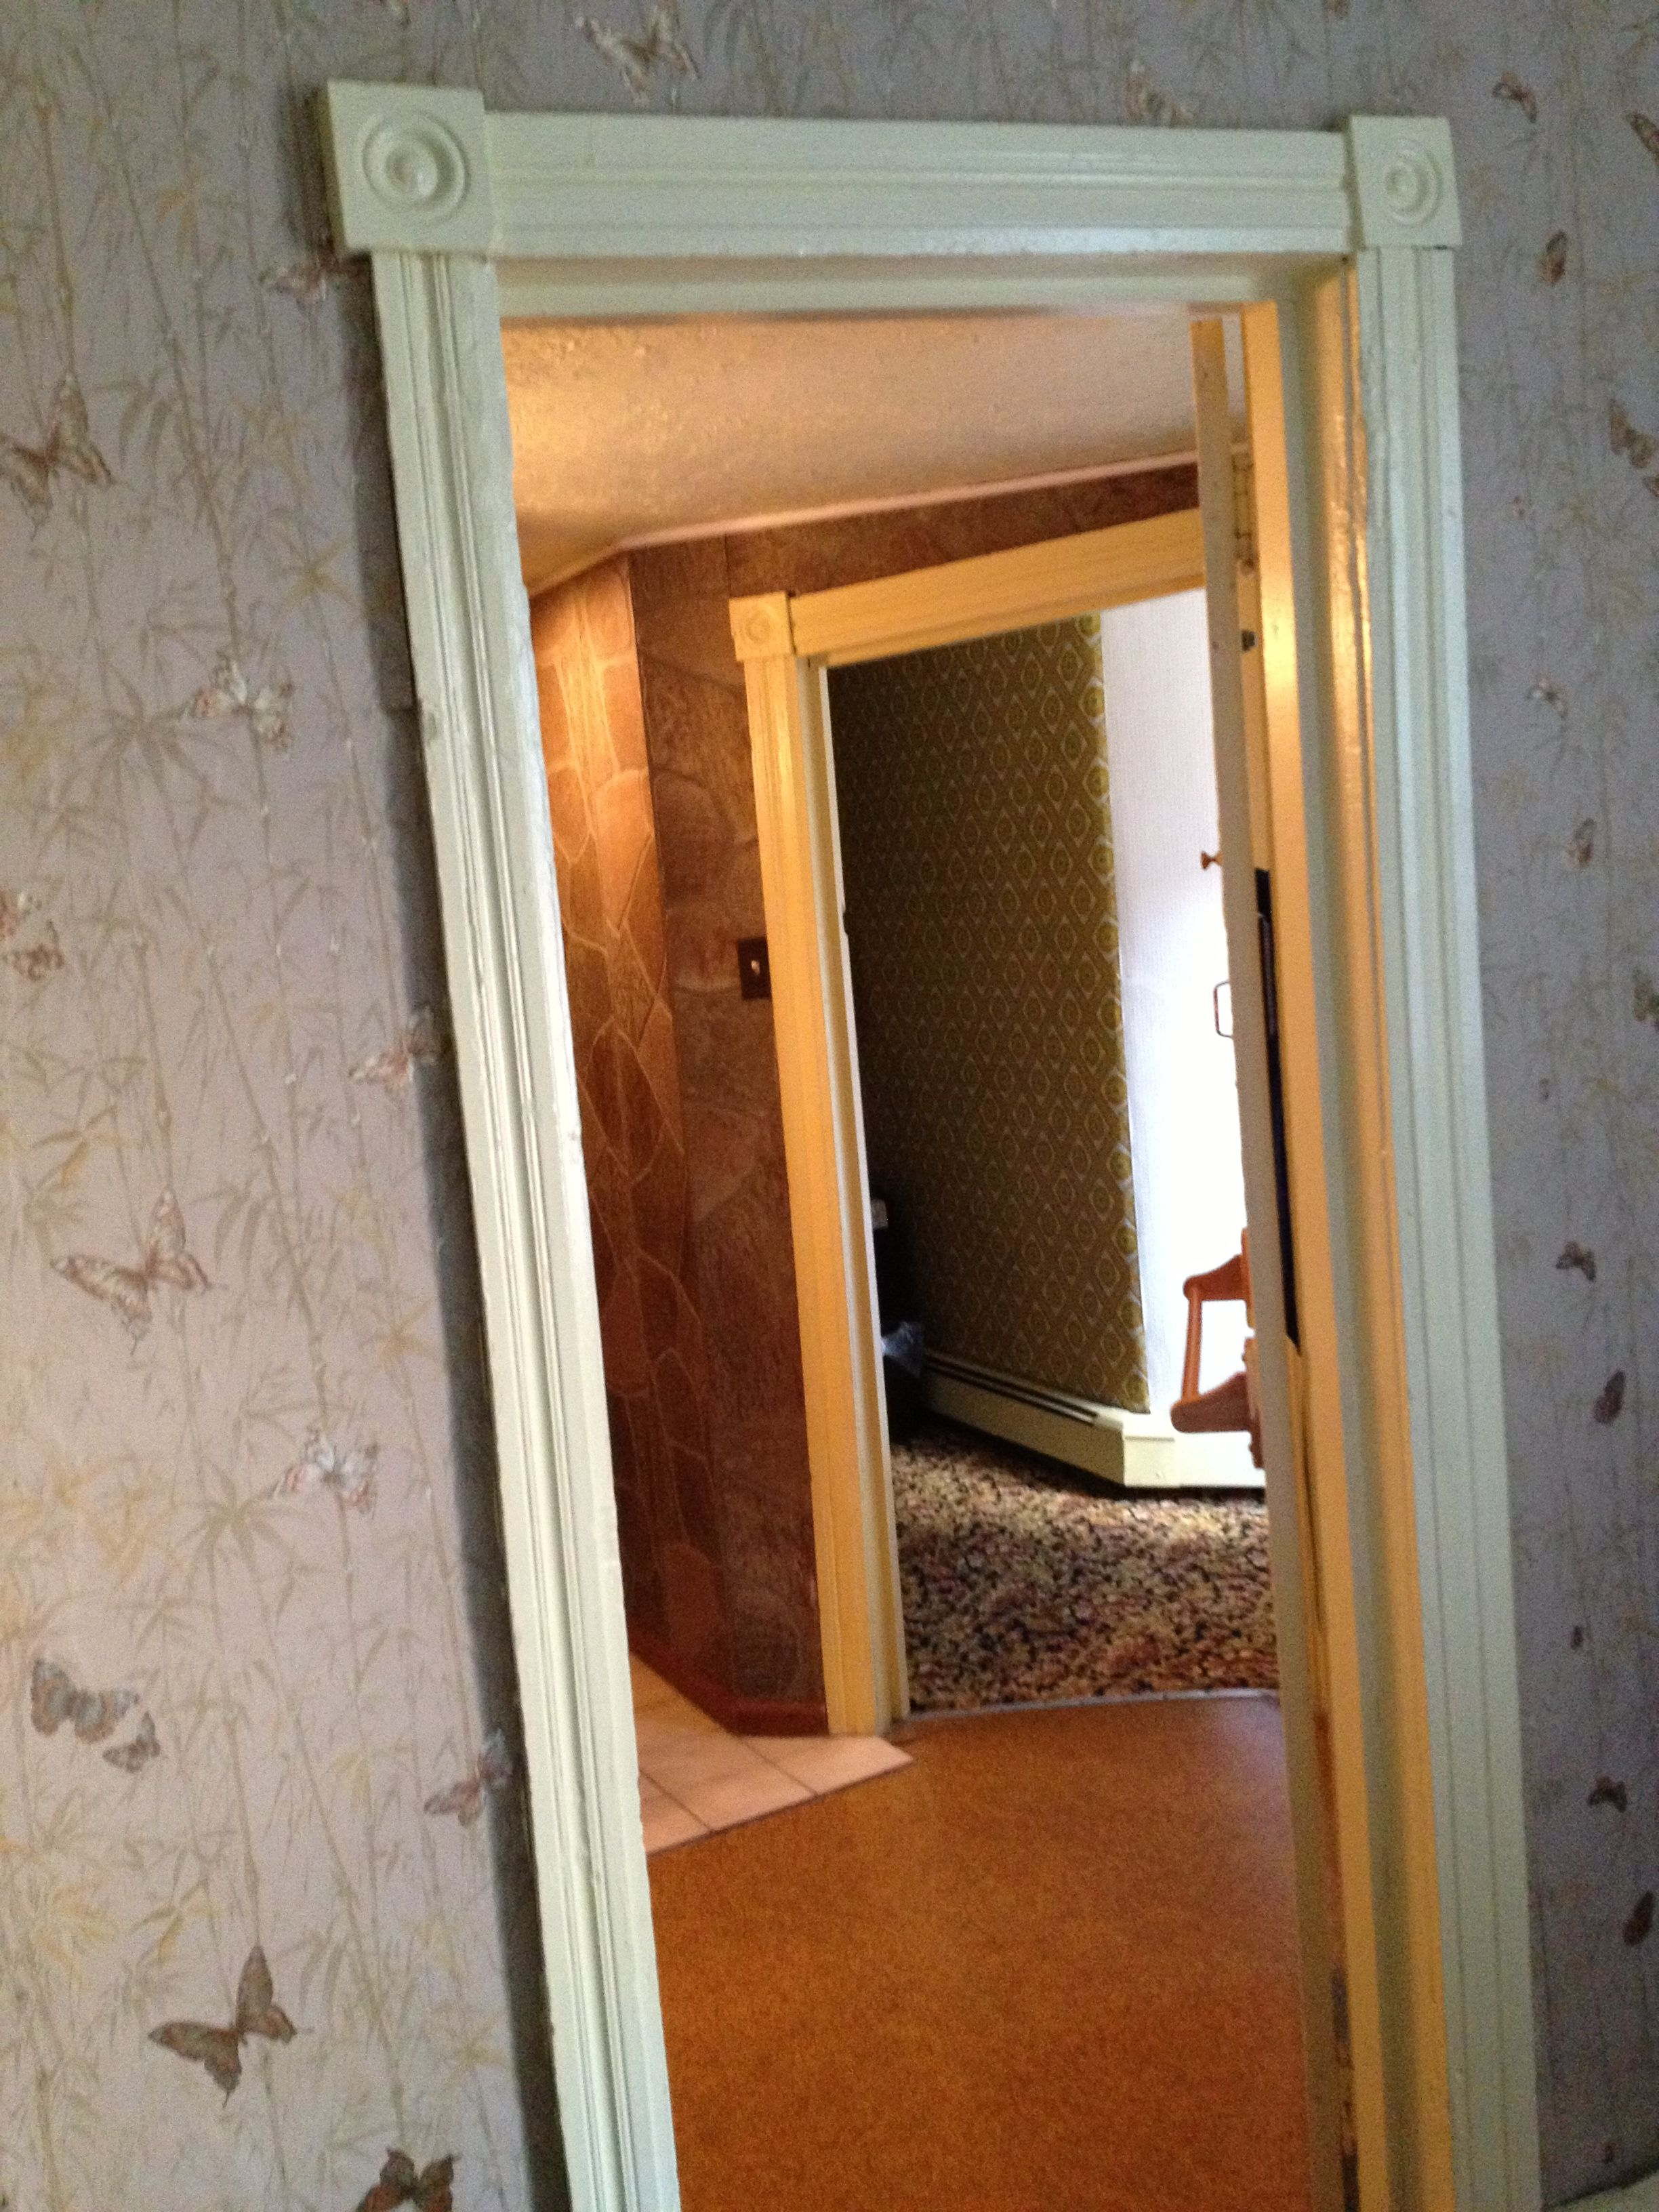 The crooked door frames only add to the charm. & Meet Me Tonight in Atlantic City